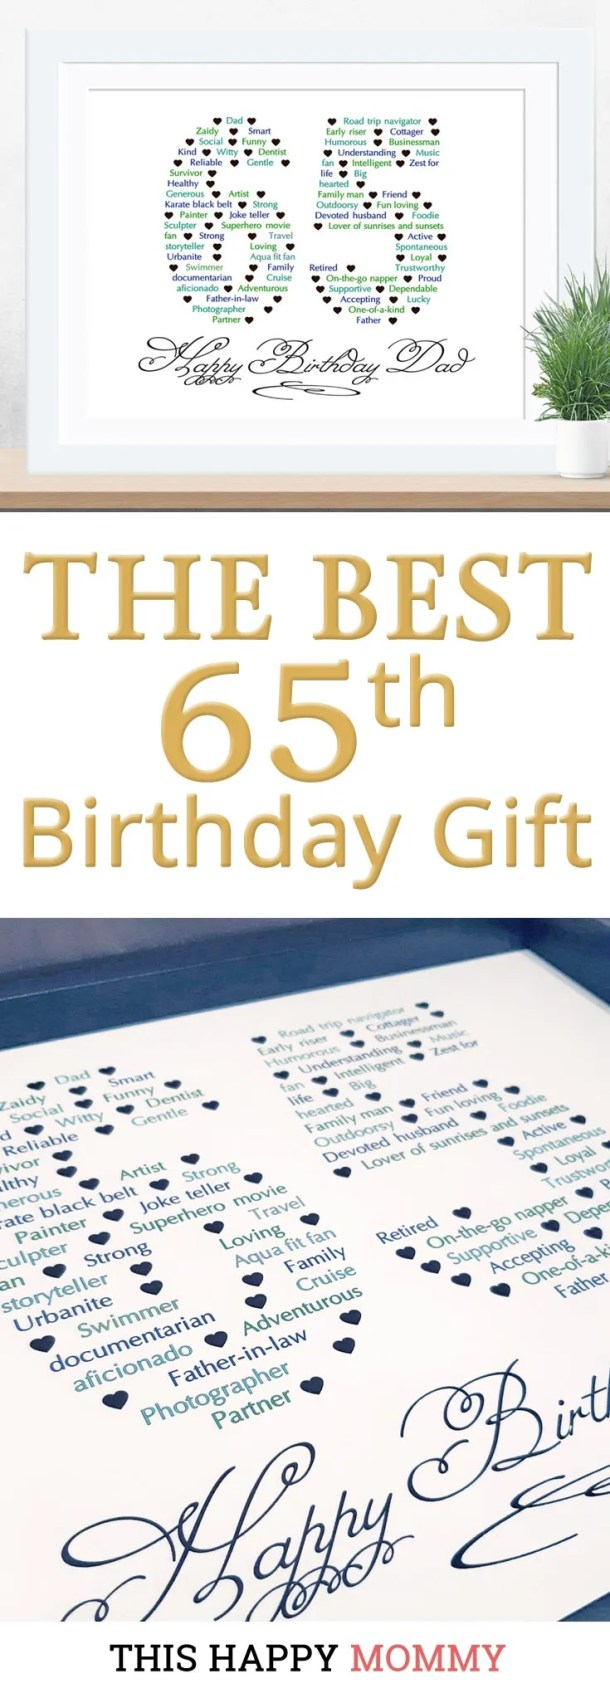 Know someone who is turning 65? Happy 65th Birthday Gift is the perfect gift for the person who has everything. Fill it with words and messages about the birthday person for a one-of-a-kind gift that will be treasured for many years to come. 65th birthday gift for dad | 65th birthday gift mom | birthday party gift for adults | the best 65th birthday gift #65birthday #birthdaygift #gift #bestgift | thishappymommy.com